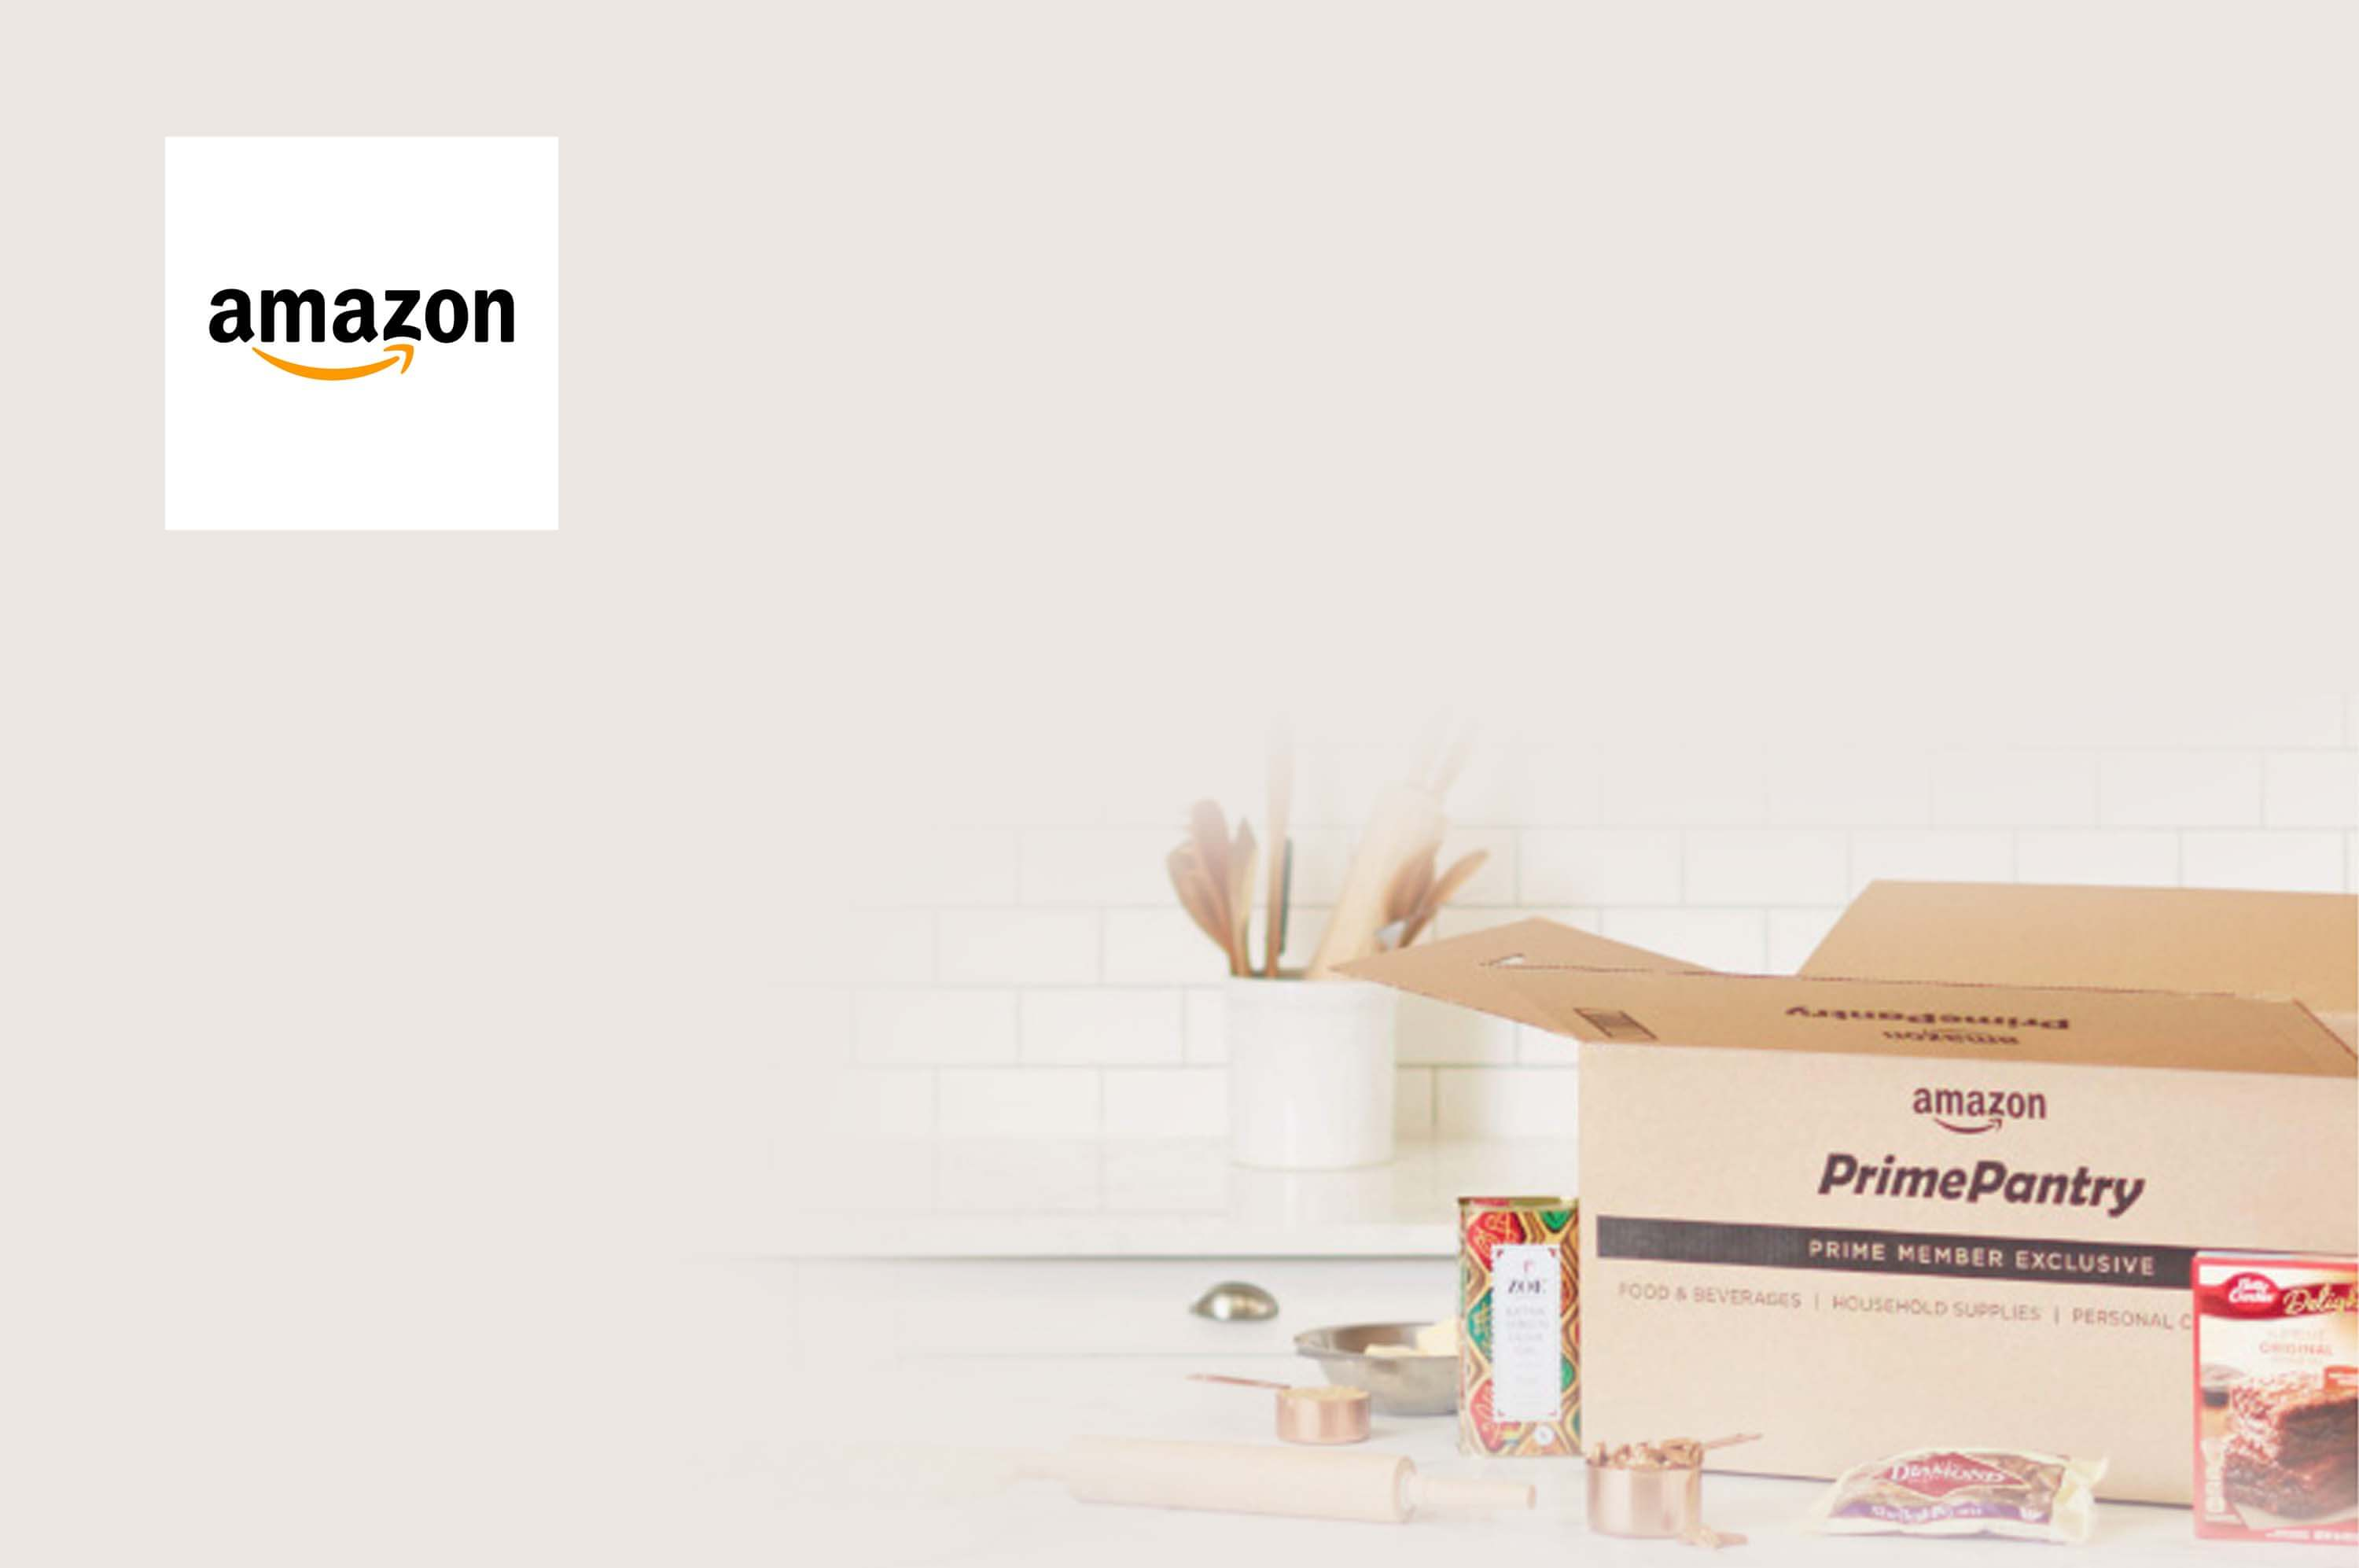 a amazon prime pantry cardboard box with grocery items